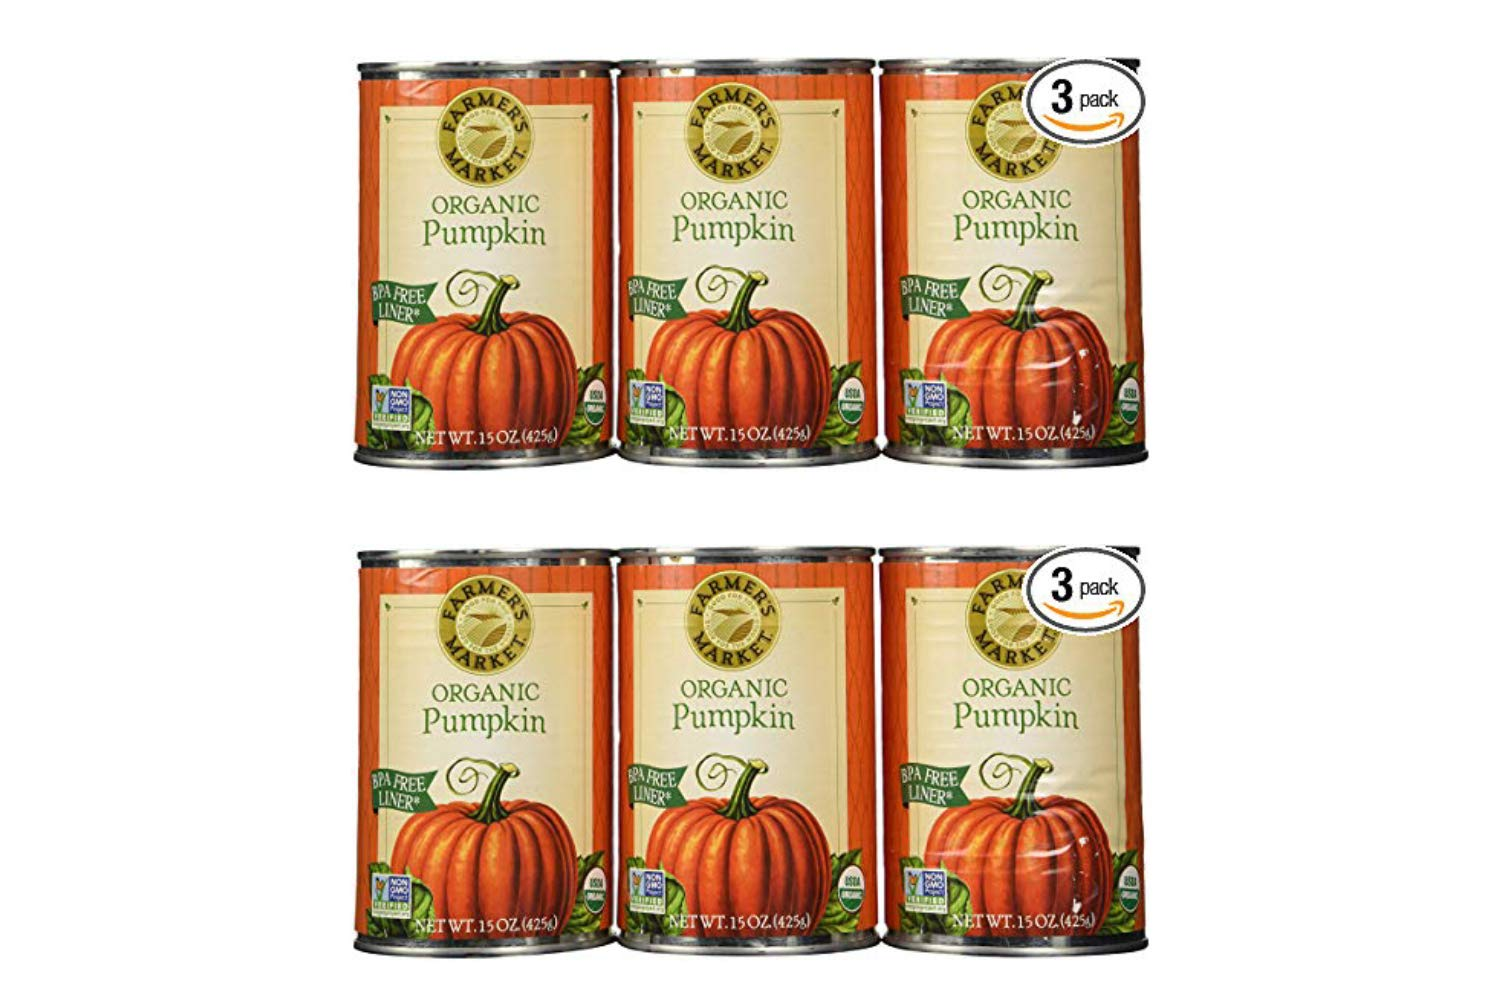 Farmers Market Pumpkin Puree 100% Organic 3 Count-15oz (2 Pack)